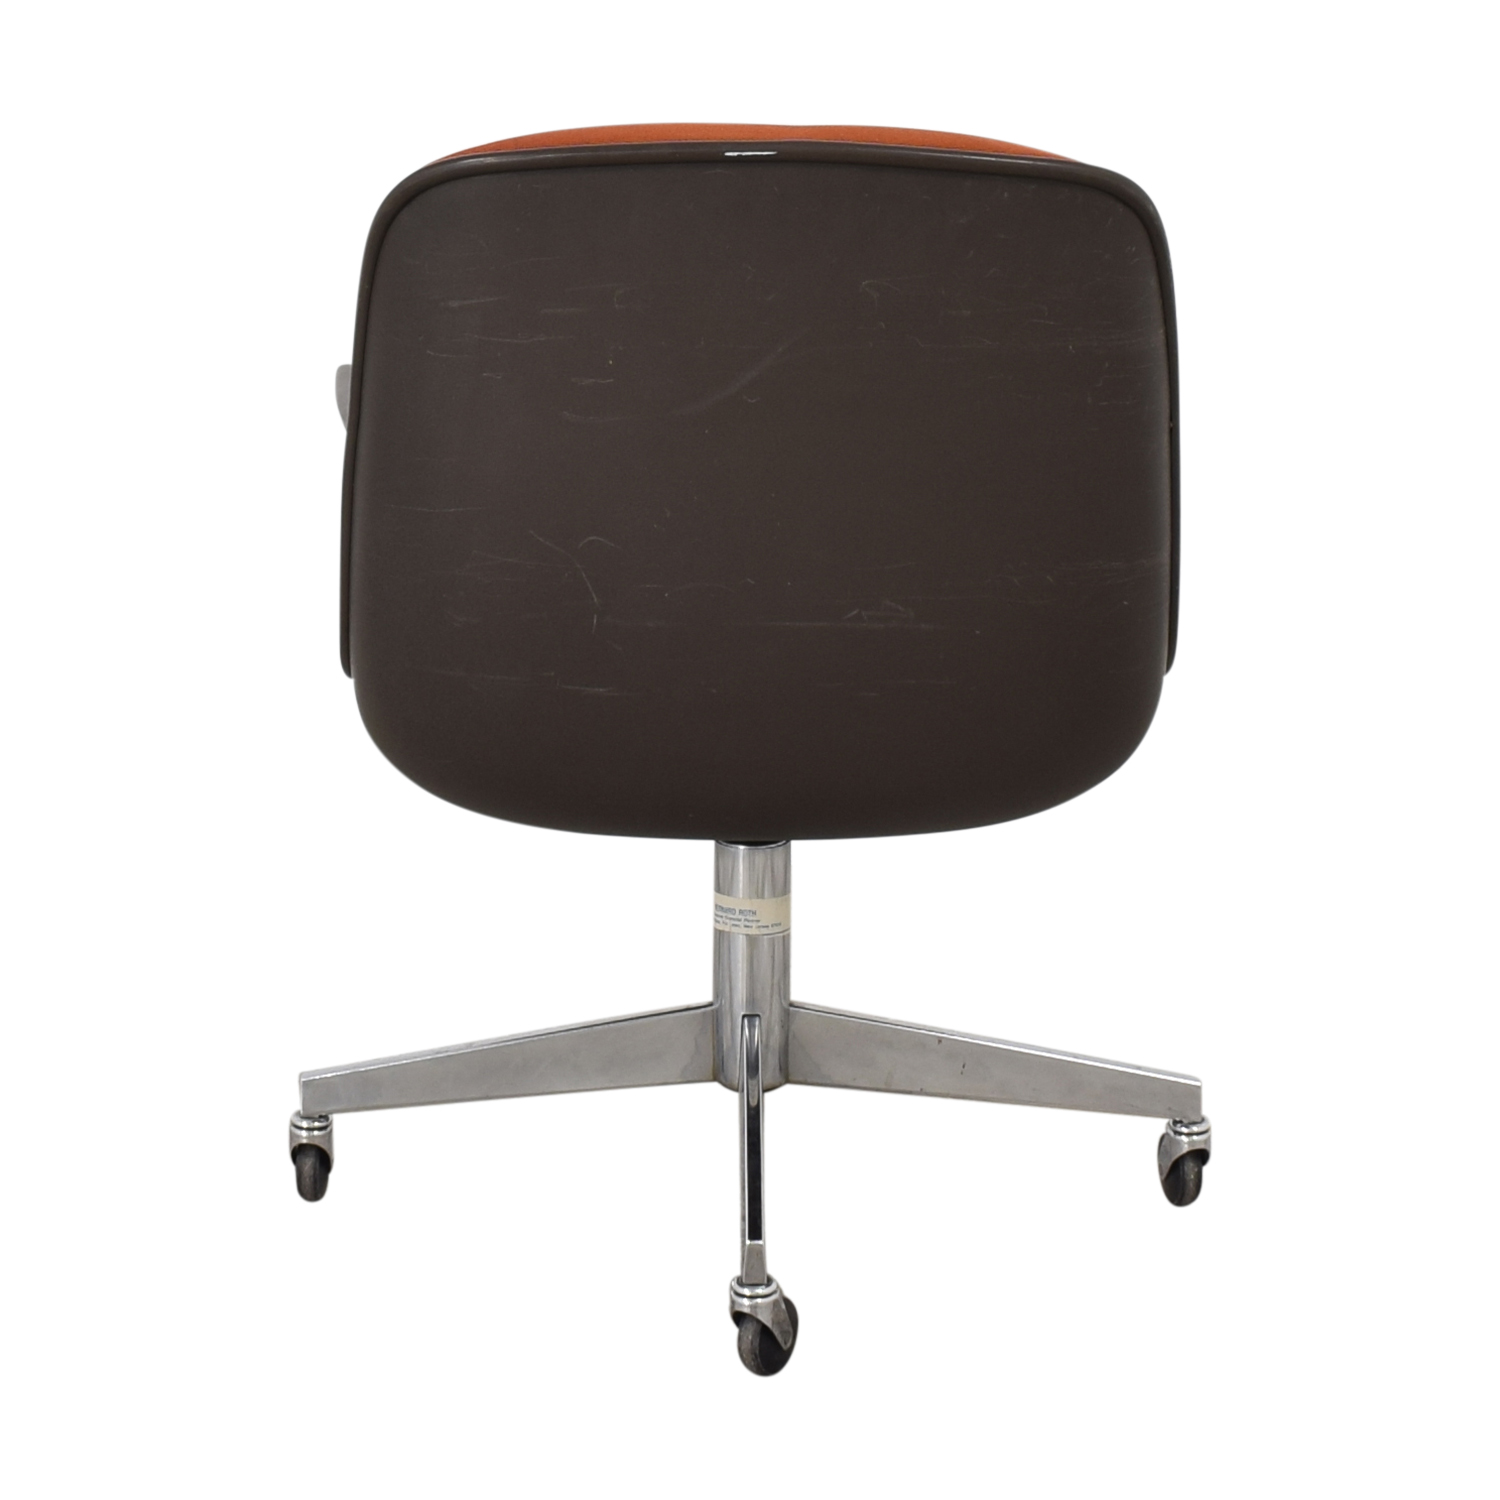 Steelcase Steelcase Mid Century Modern Office Chair used